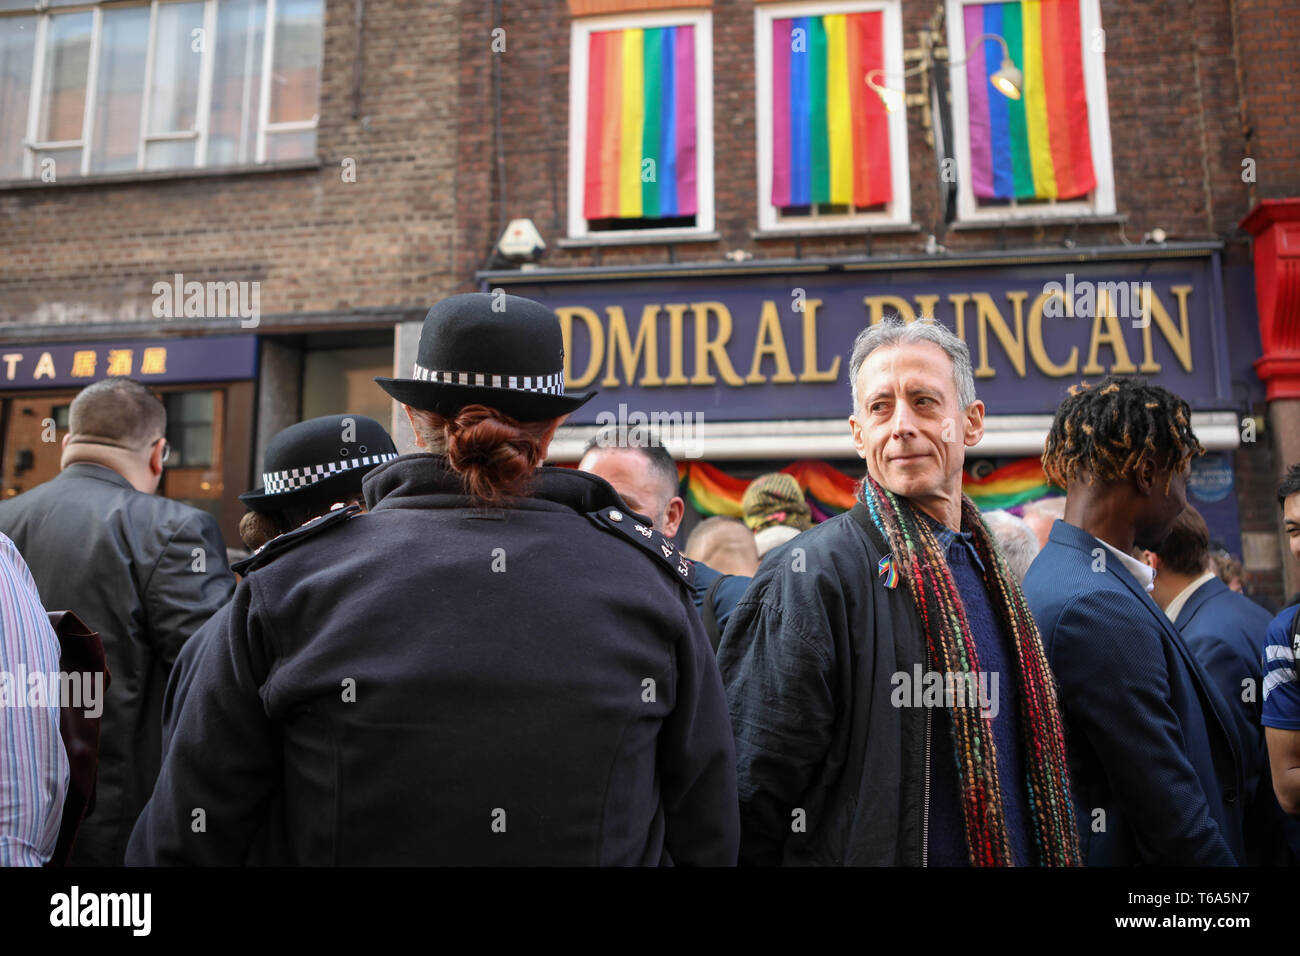 Soho, London, UK. 30th Apr, 2019. 20th anniversary of the tragic bombing at gay pub Admiral Duncan in Soho with a community-led act of Remembrance outside the historic venue in Old Compton Street. On the same day in 1999, a nail bomb attack at the pub in Soho killed three people and wounded 79. Four of the survivors had to have limbs amputated. Credit: Penelope Barritt/Alamy Live News Stock Photo